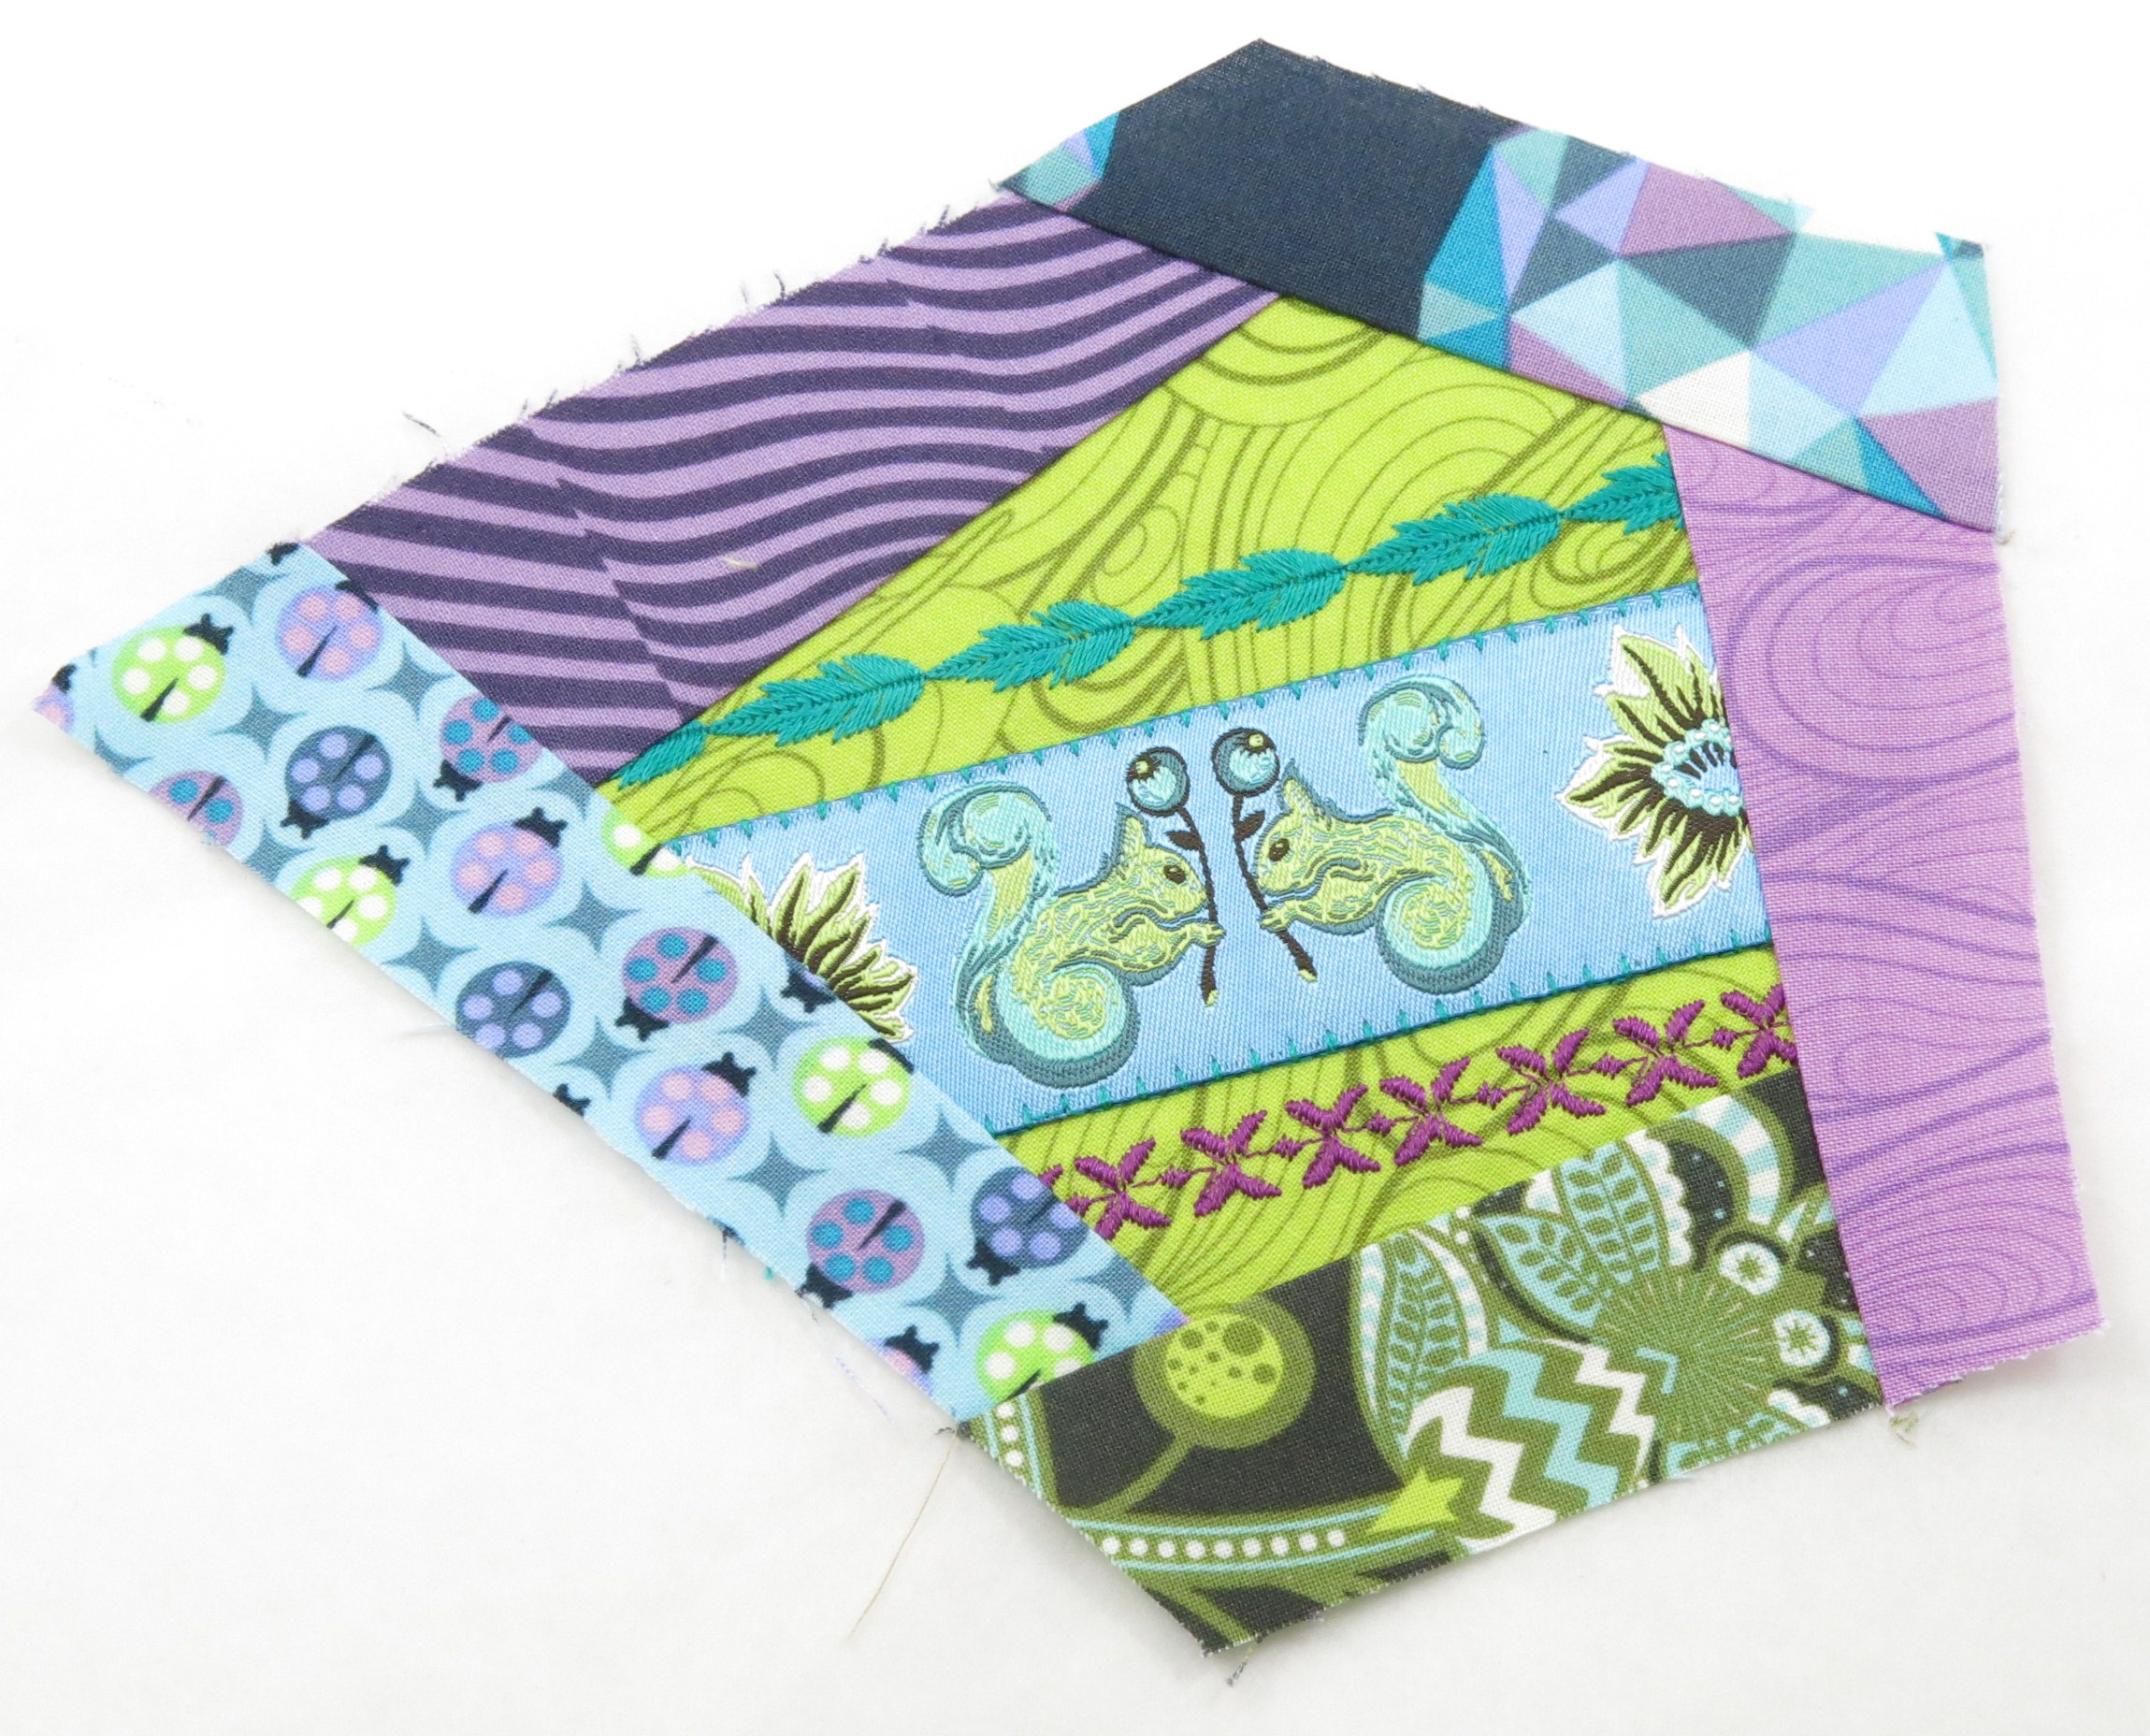 Crazy quilting in a modern way inspirations stitch by stitch